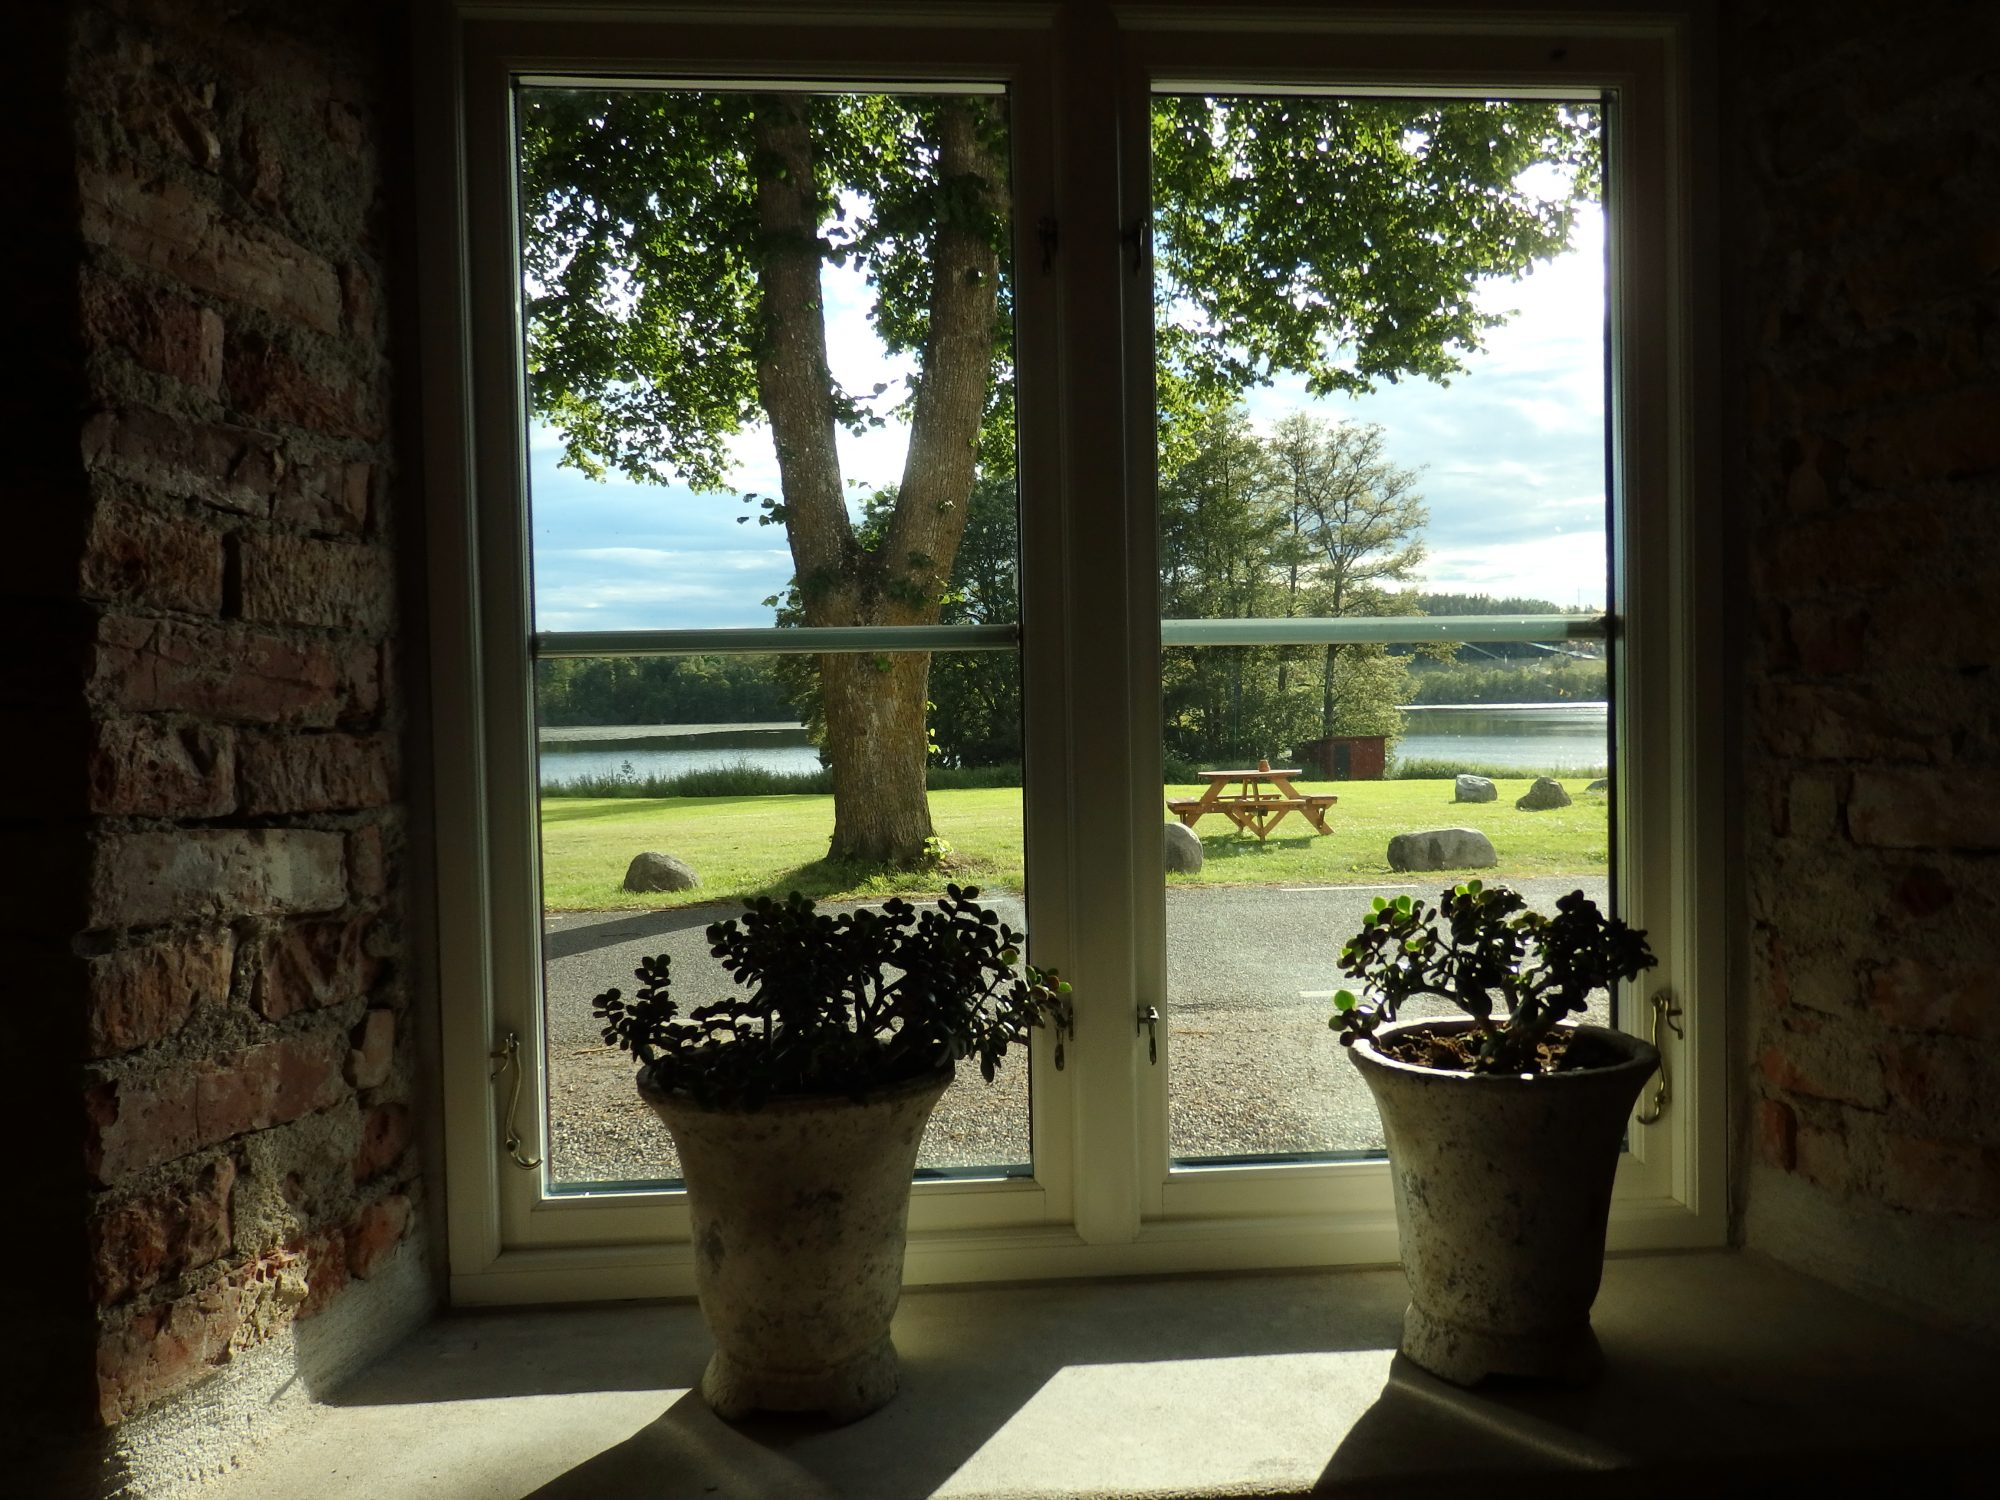 a view out of the main building toward the lake at Öster Malma